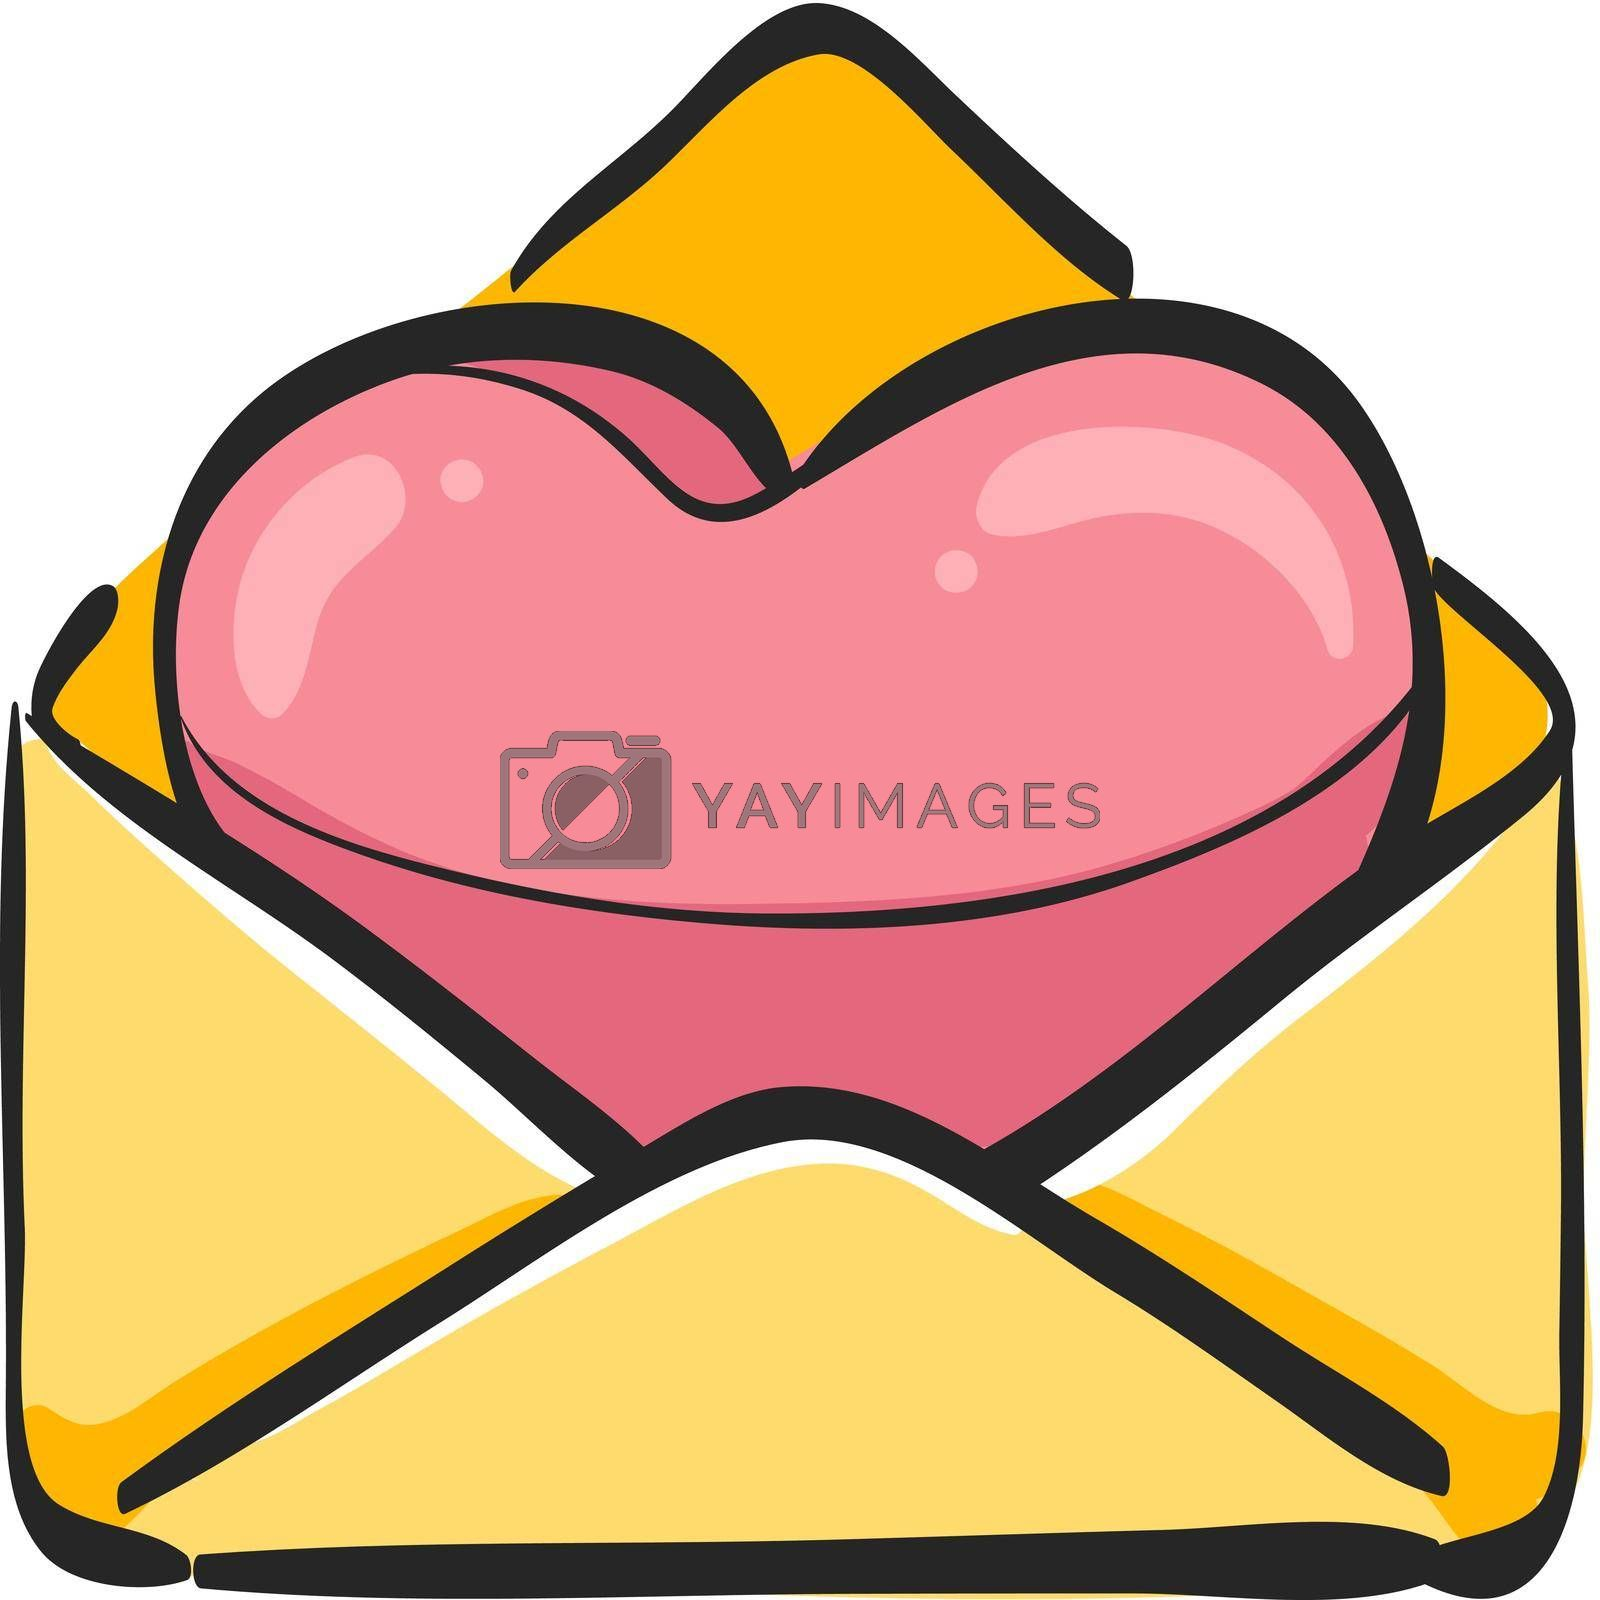 Envelope with heart icon in color drawing. Love romance receive surprise gift